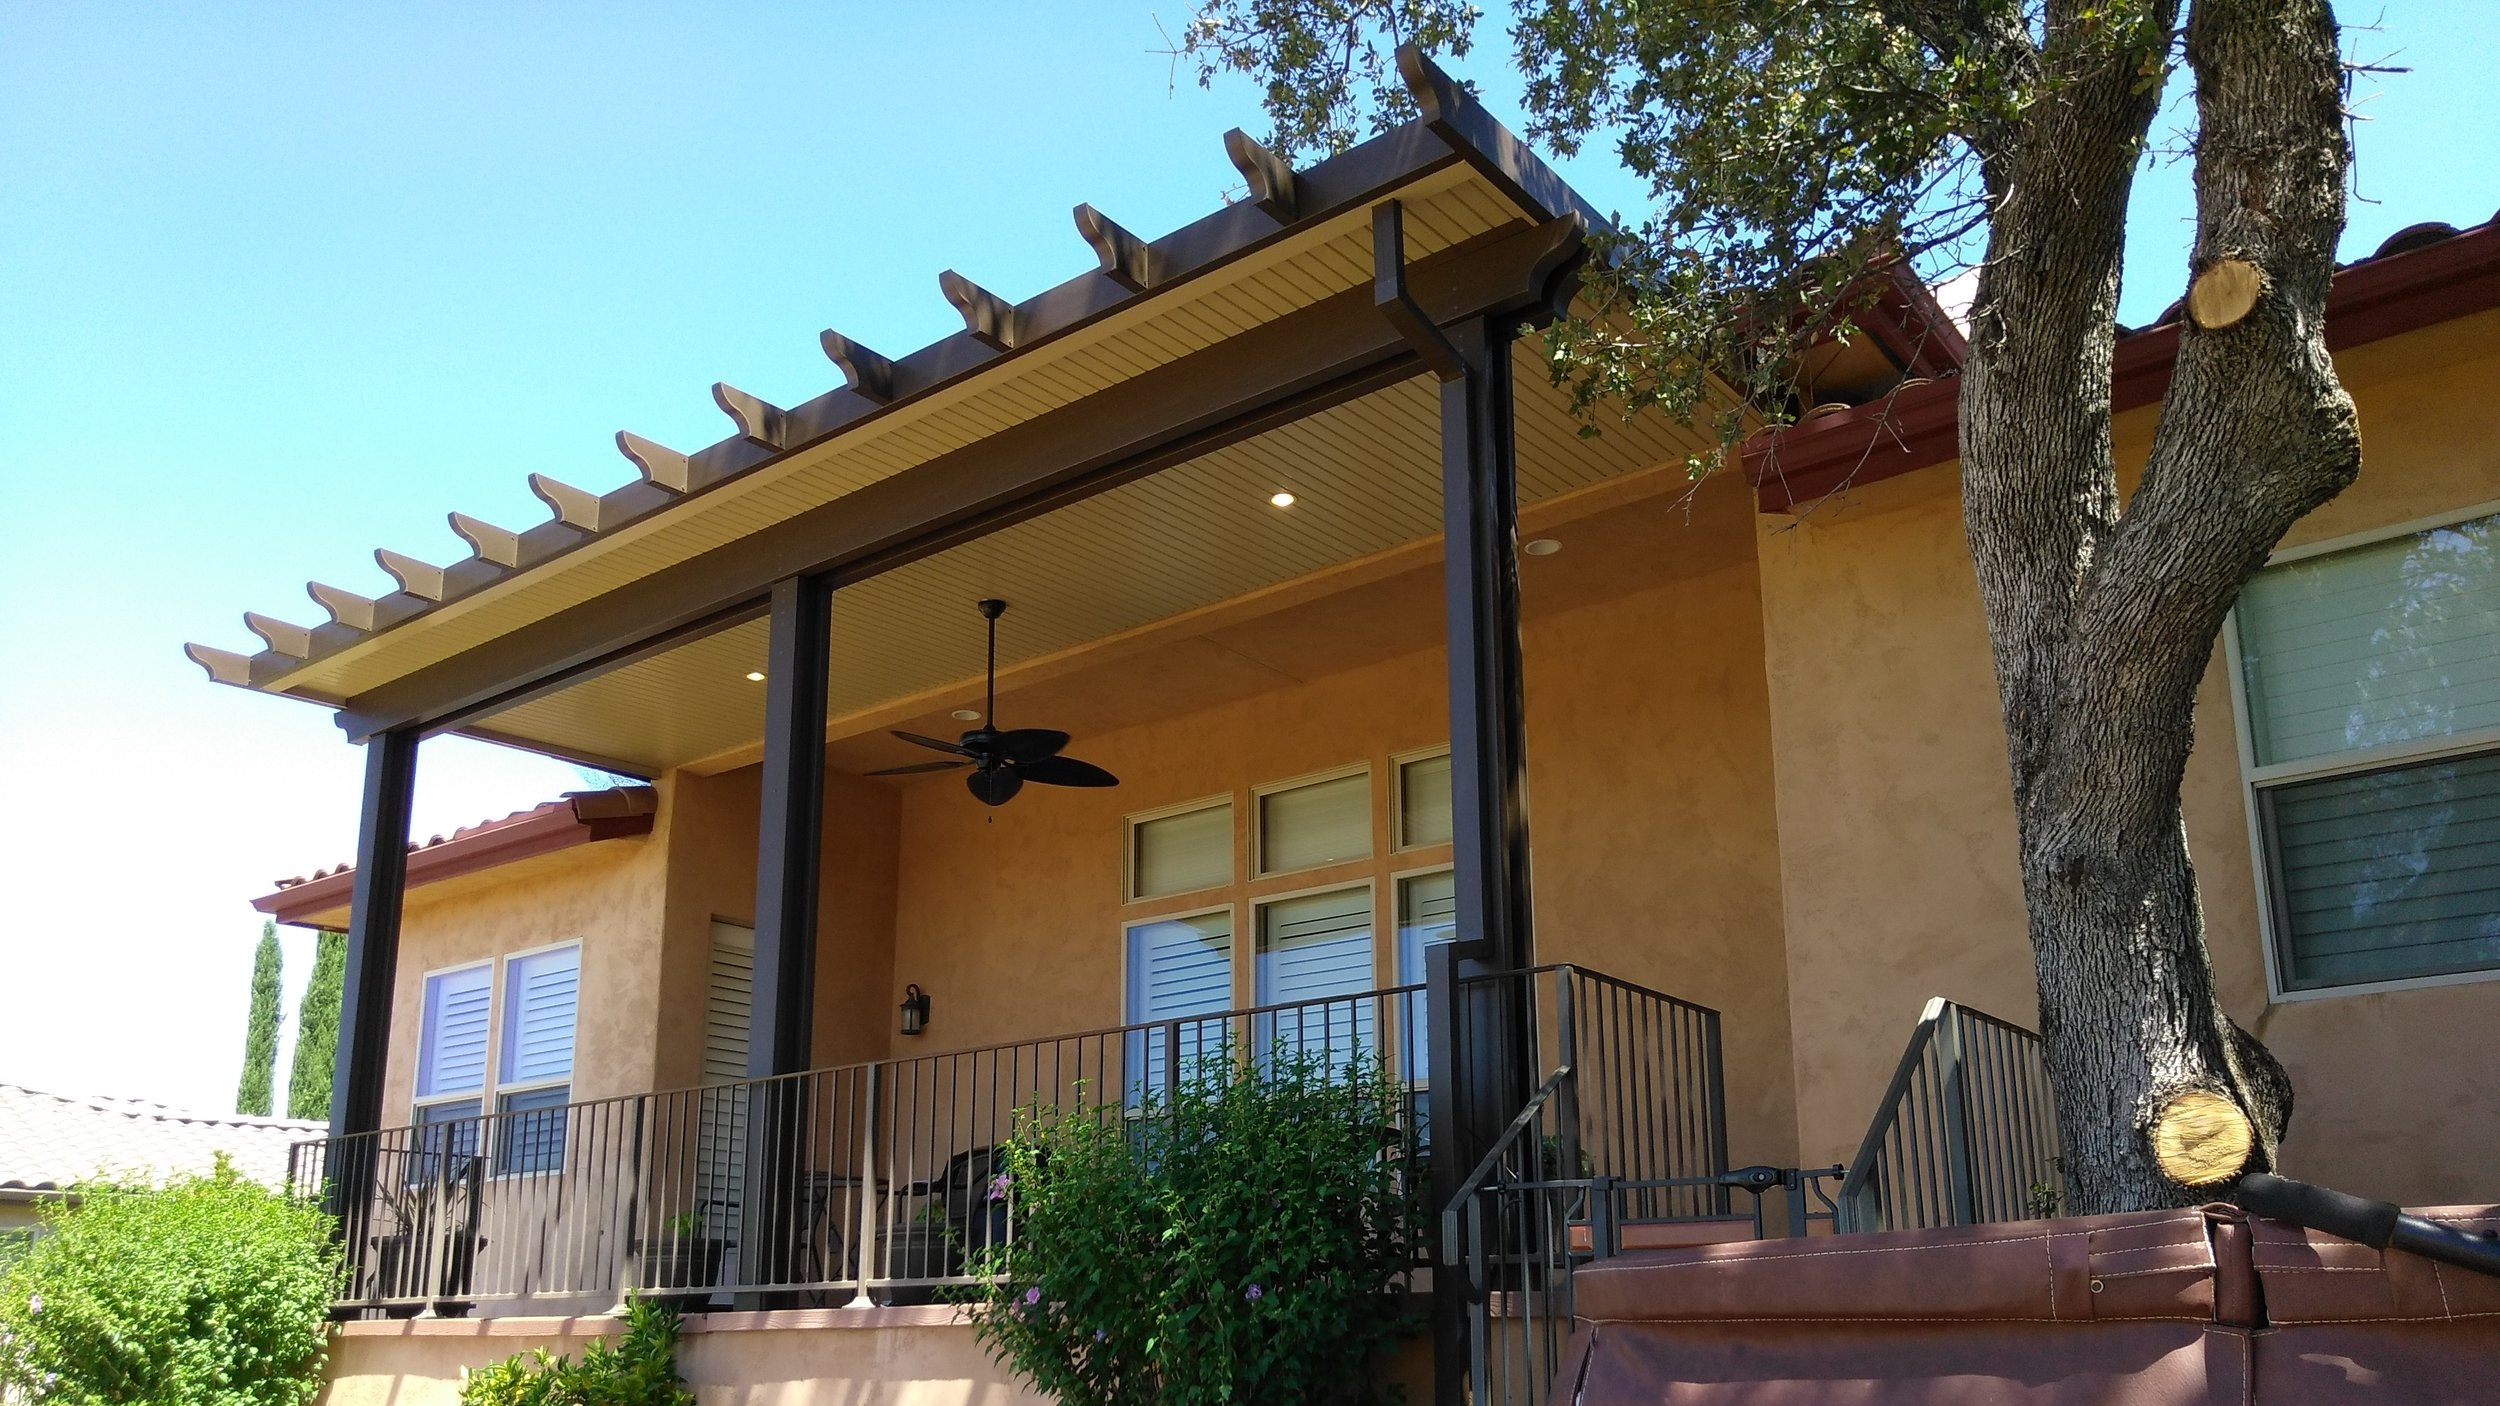 - With our aluminum shade structures, you get the best of both worlds: the beauty of wood and the convenience of a highly durable, low-maintenance aluminum surface. Unlike wood, these shade structures won't crack, peel, warp, or rot. They're also termite-proof, don't burn, and never need painting. Whether you're attaching a shaded area to your home, or building a freestanding private retreat, our patio covers have the design flexibility needed to make your vision a reality.